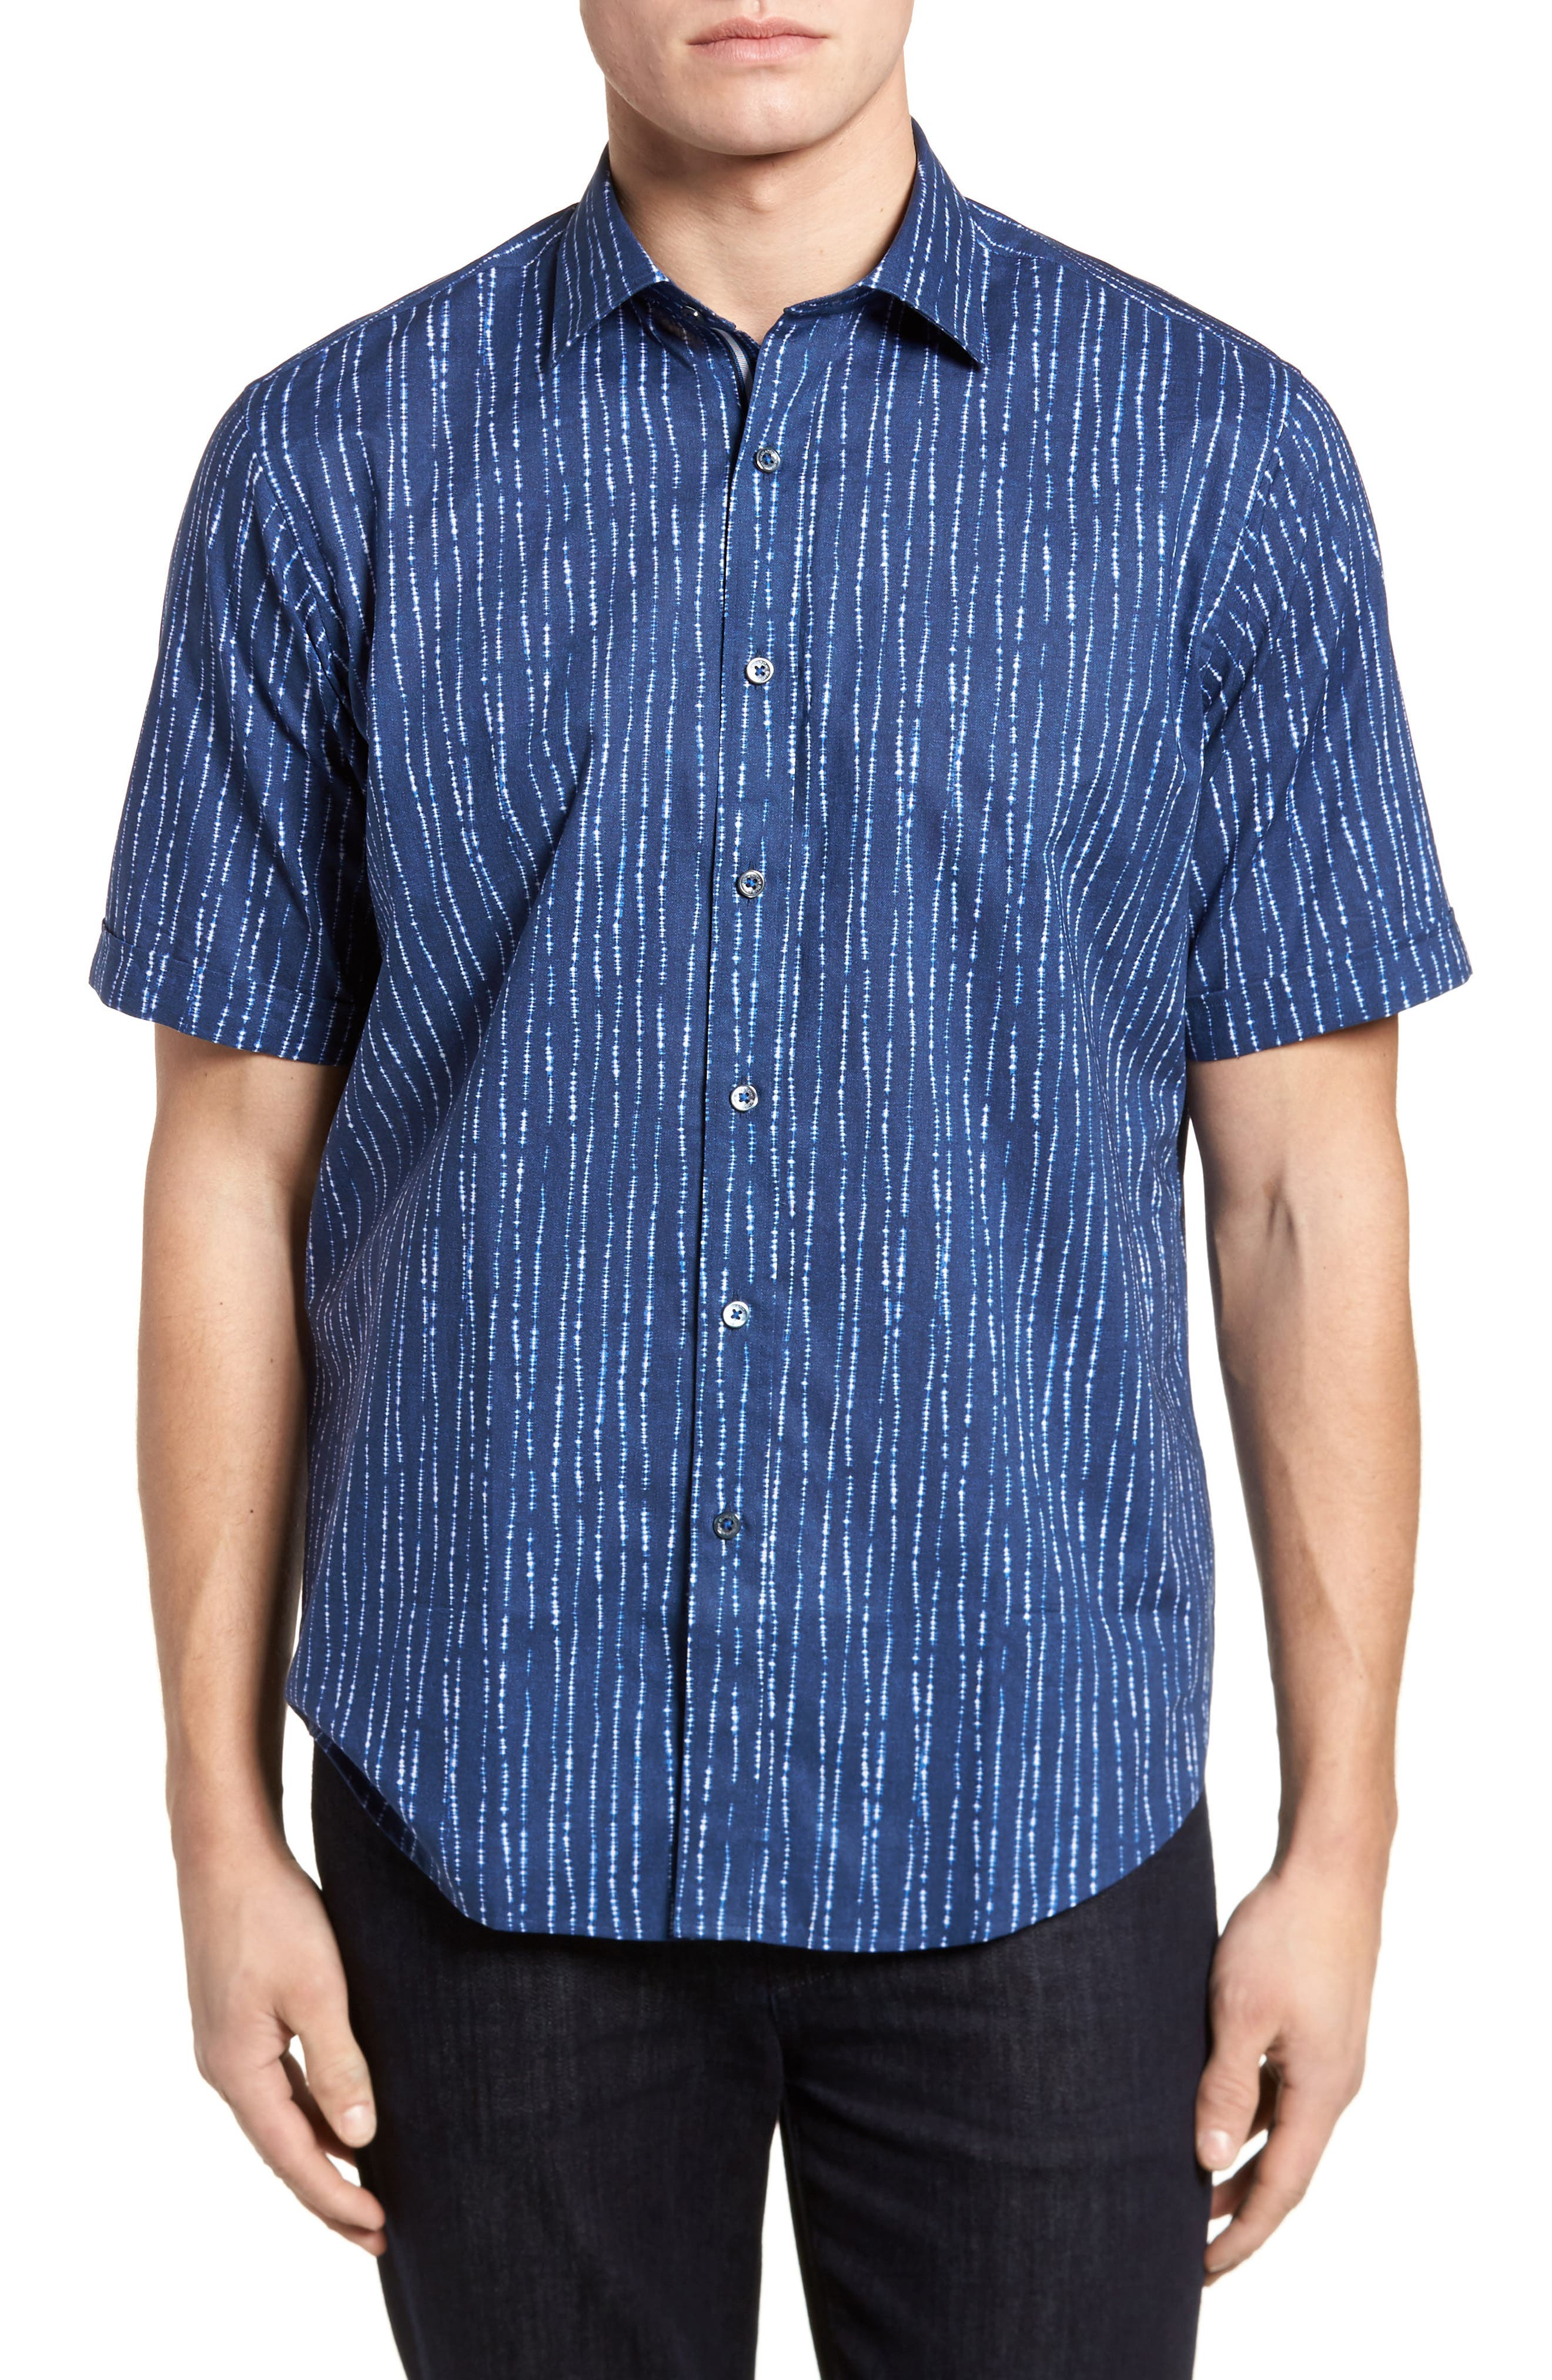 Freehand Tie Dye Lines Classic Fit Sport Shirt,                         Main,                         color, Navy